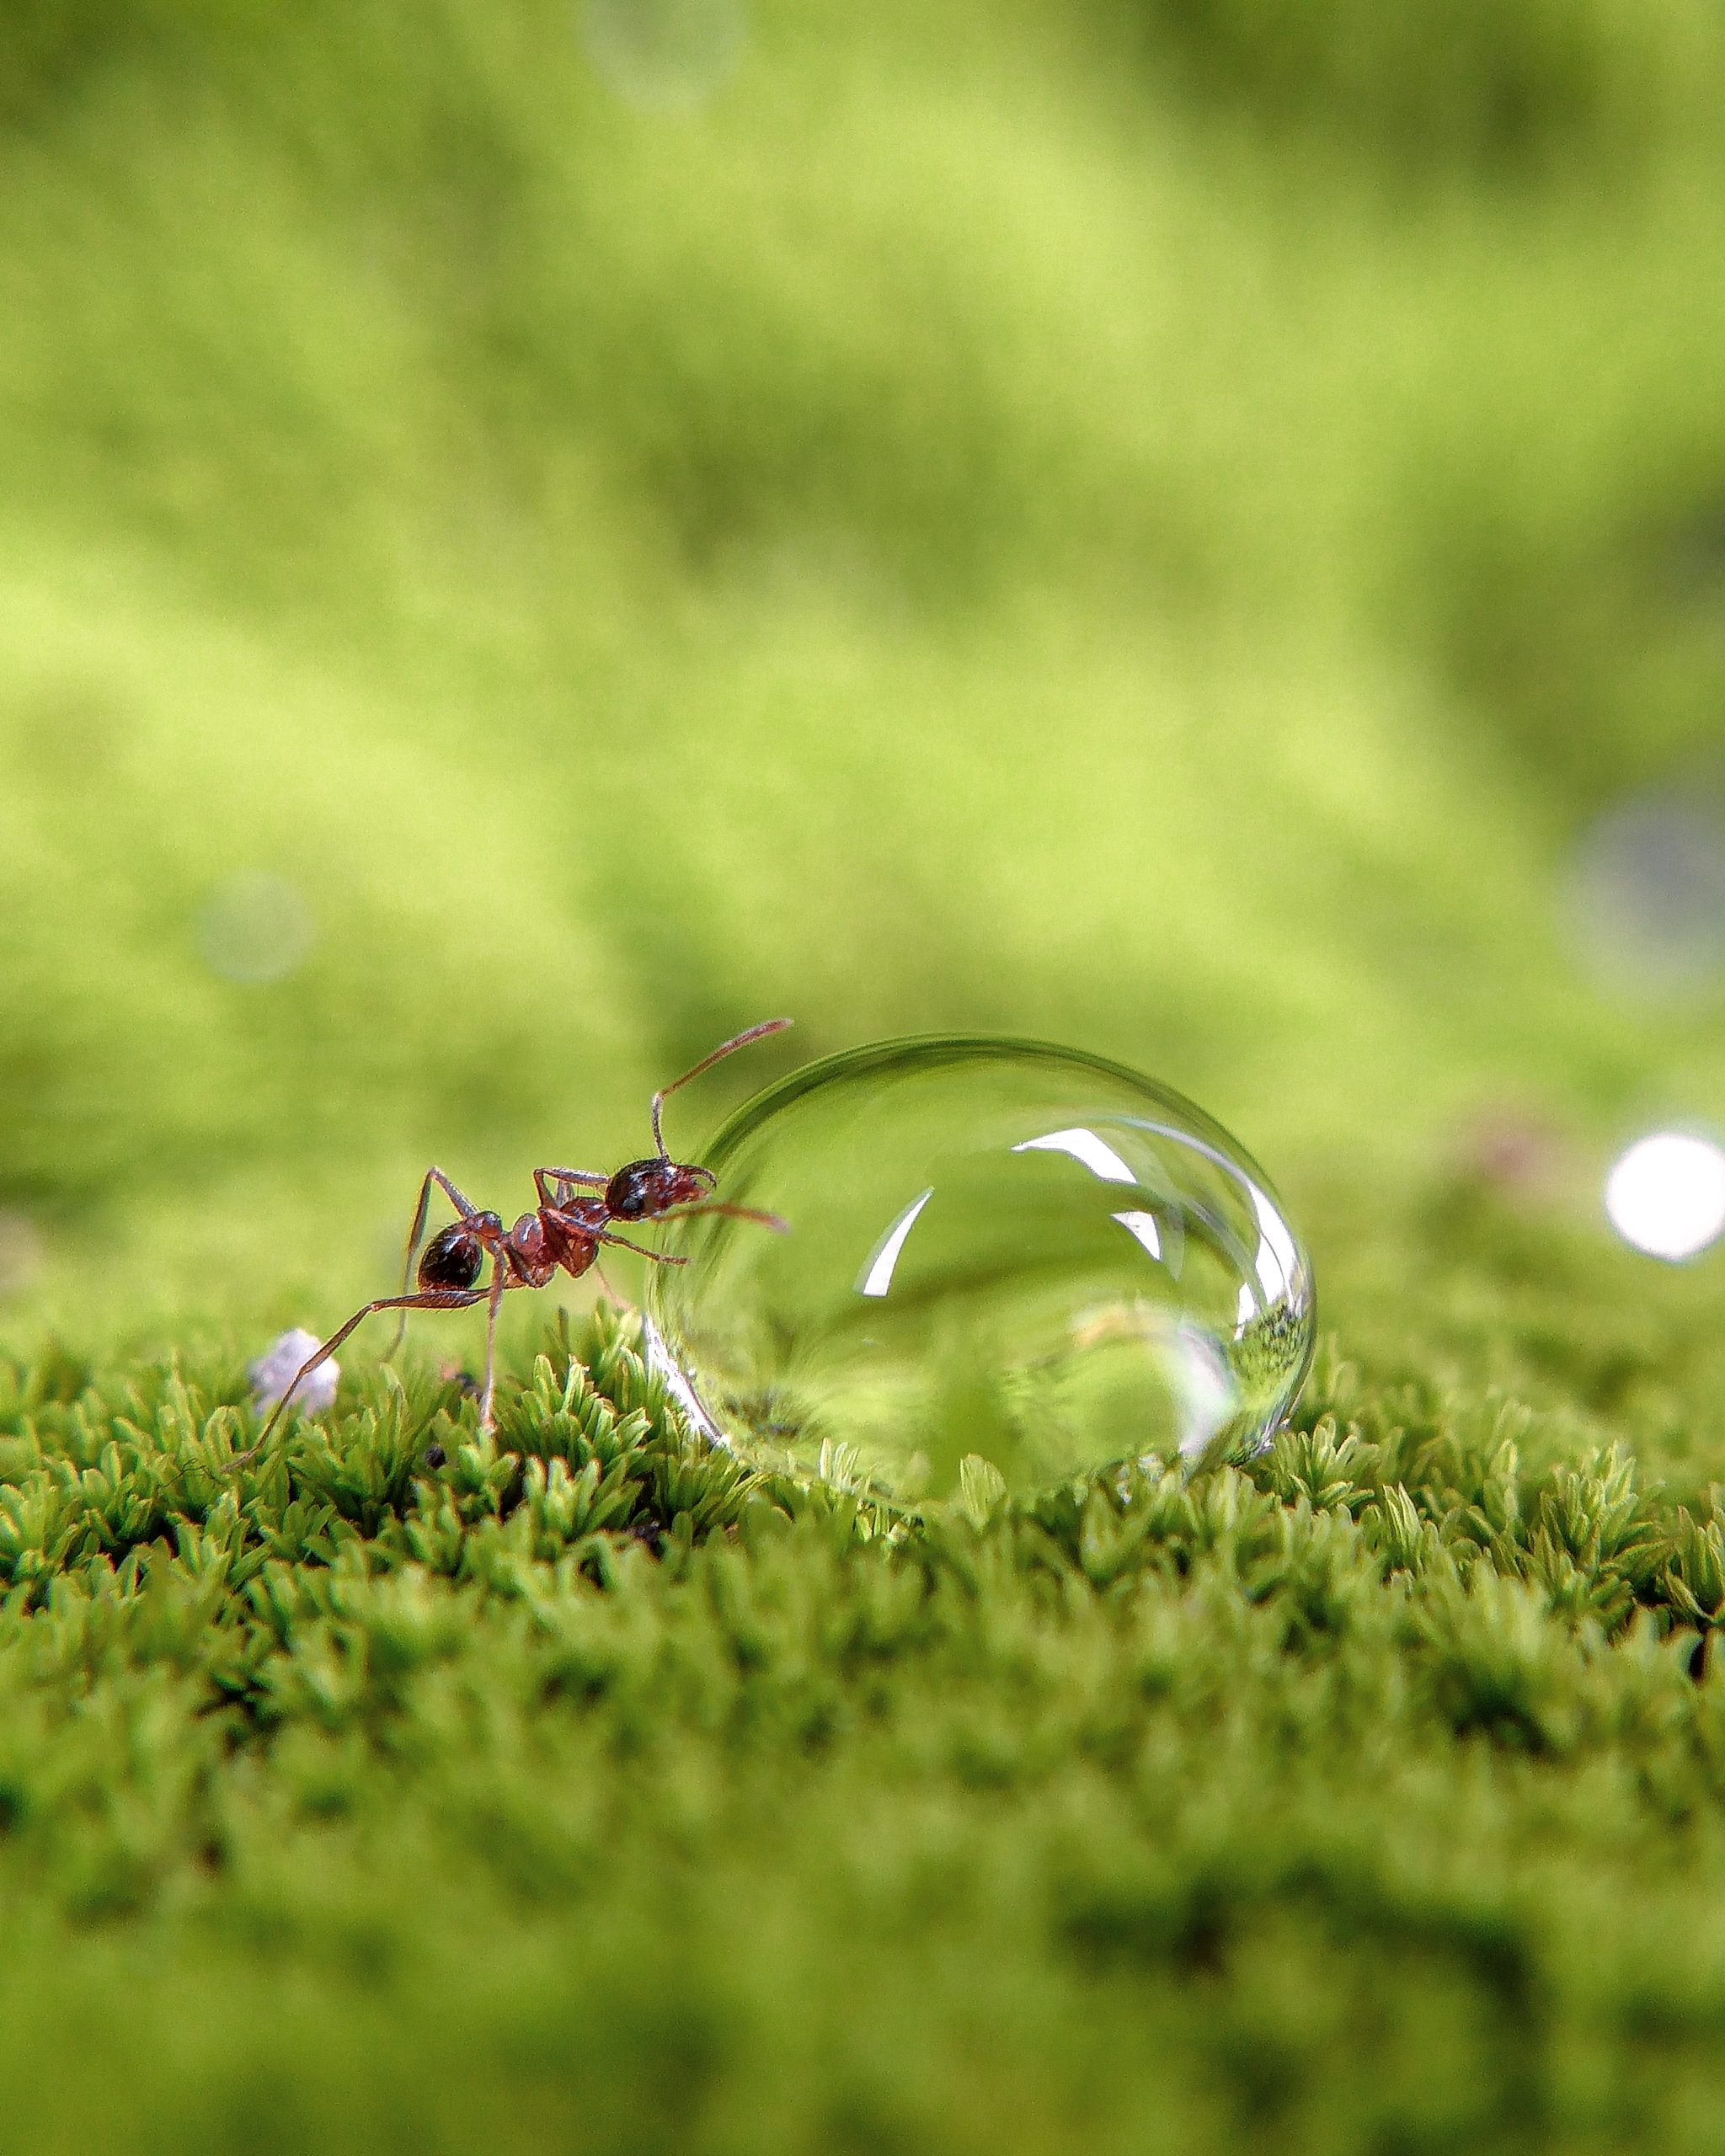 Ant and Bubble